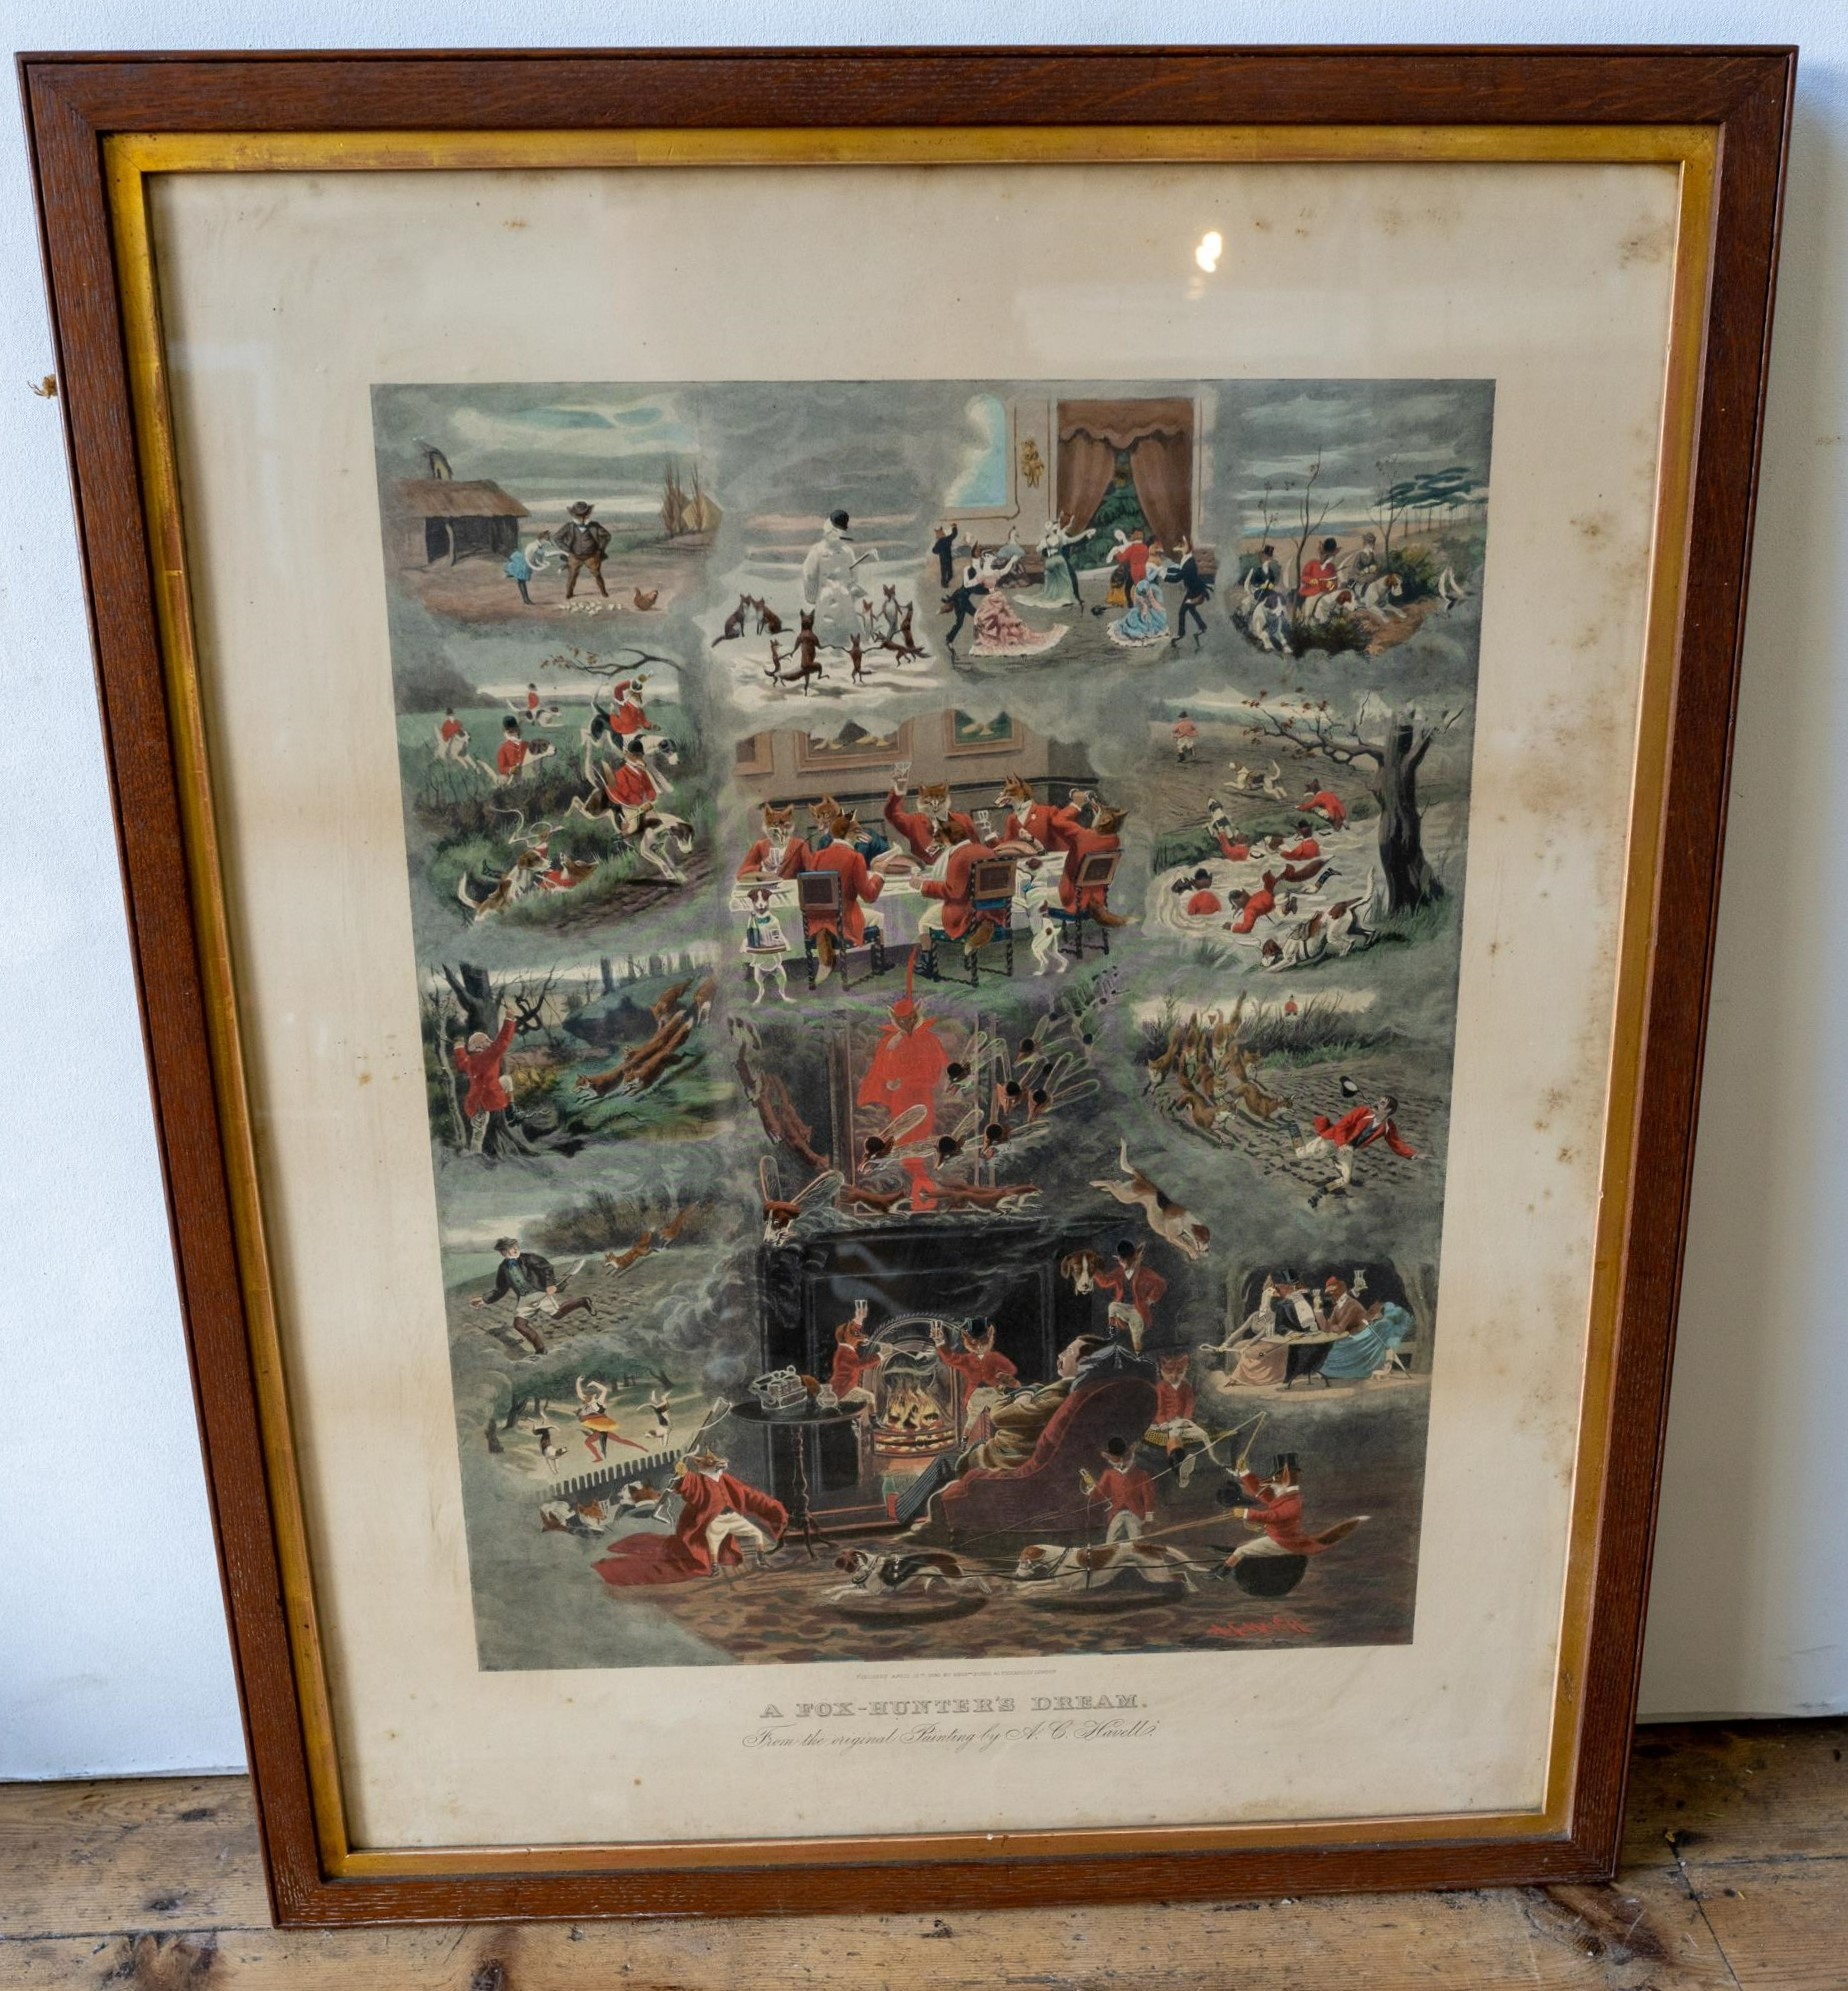 AN OAK FRAMED VICTORIAN PRINT 'A FOXHUNTER'S DREAM' AND FIVE OTHER COUNTRY PURSUITS PRINTS PRINTS,